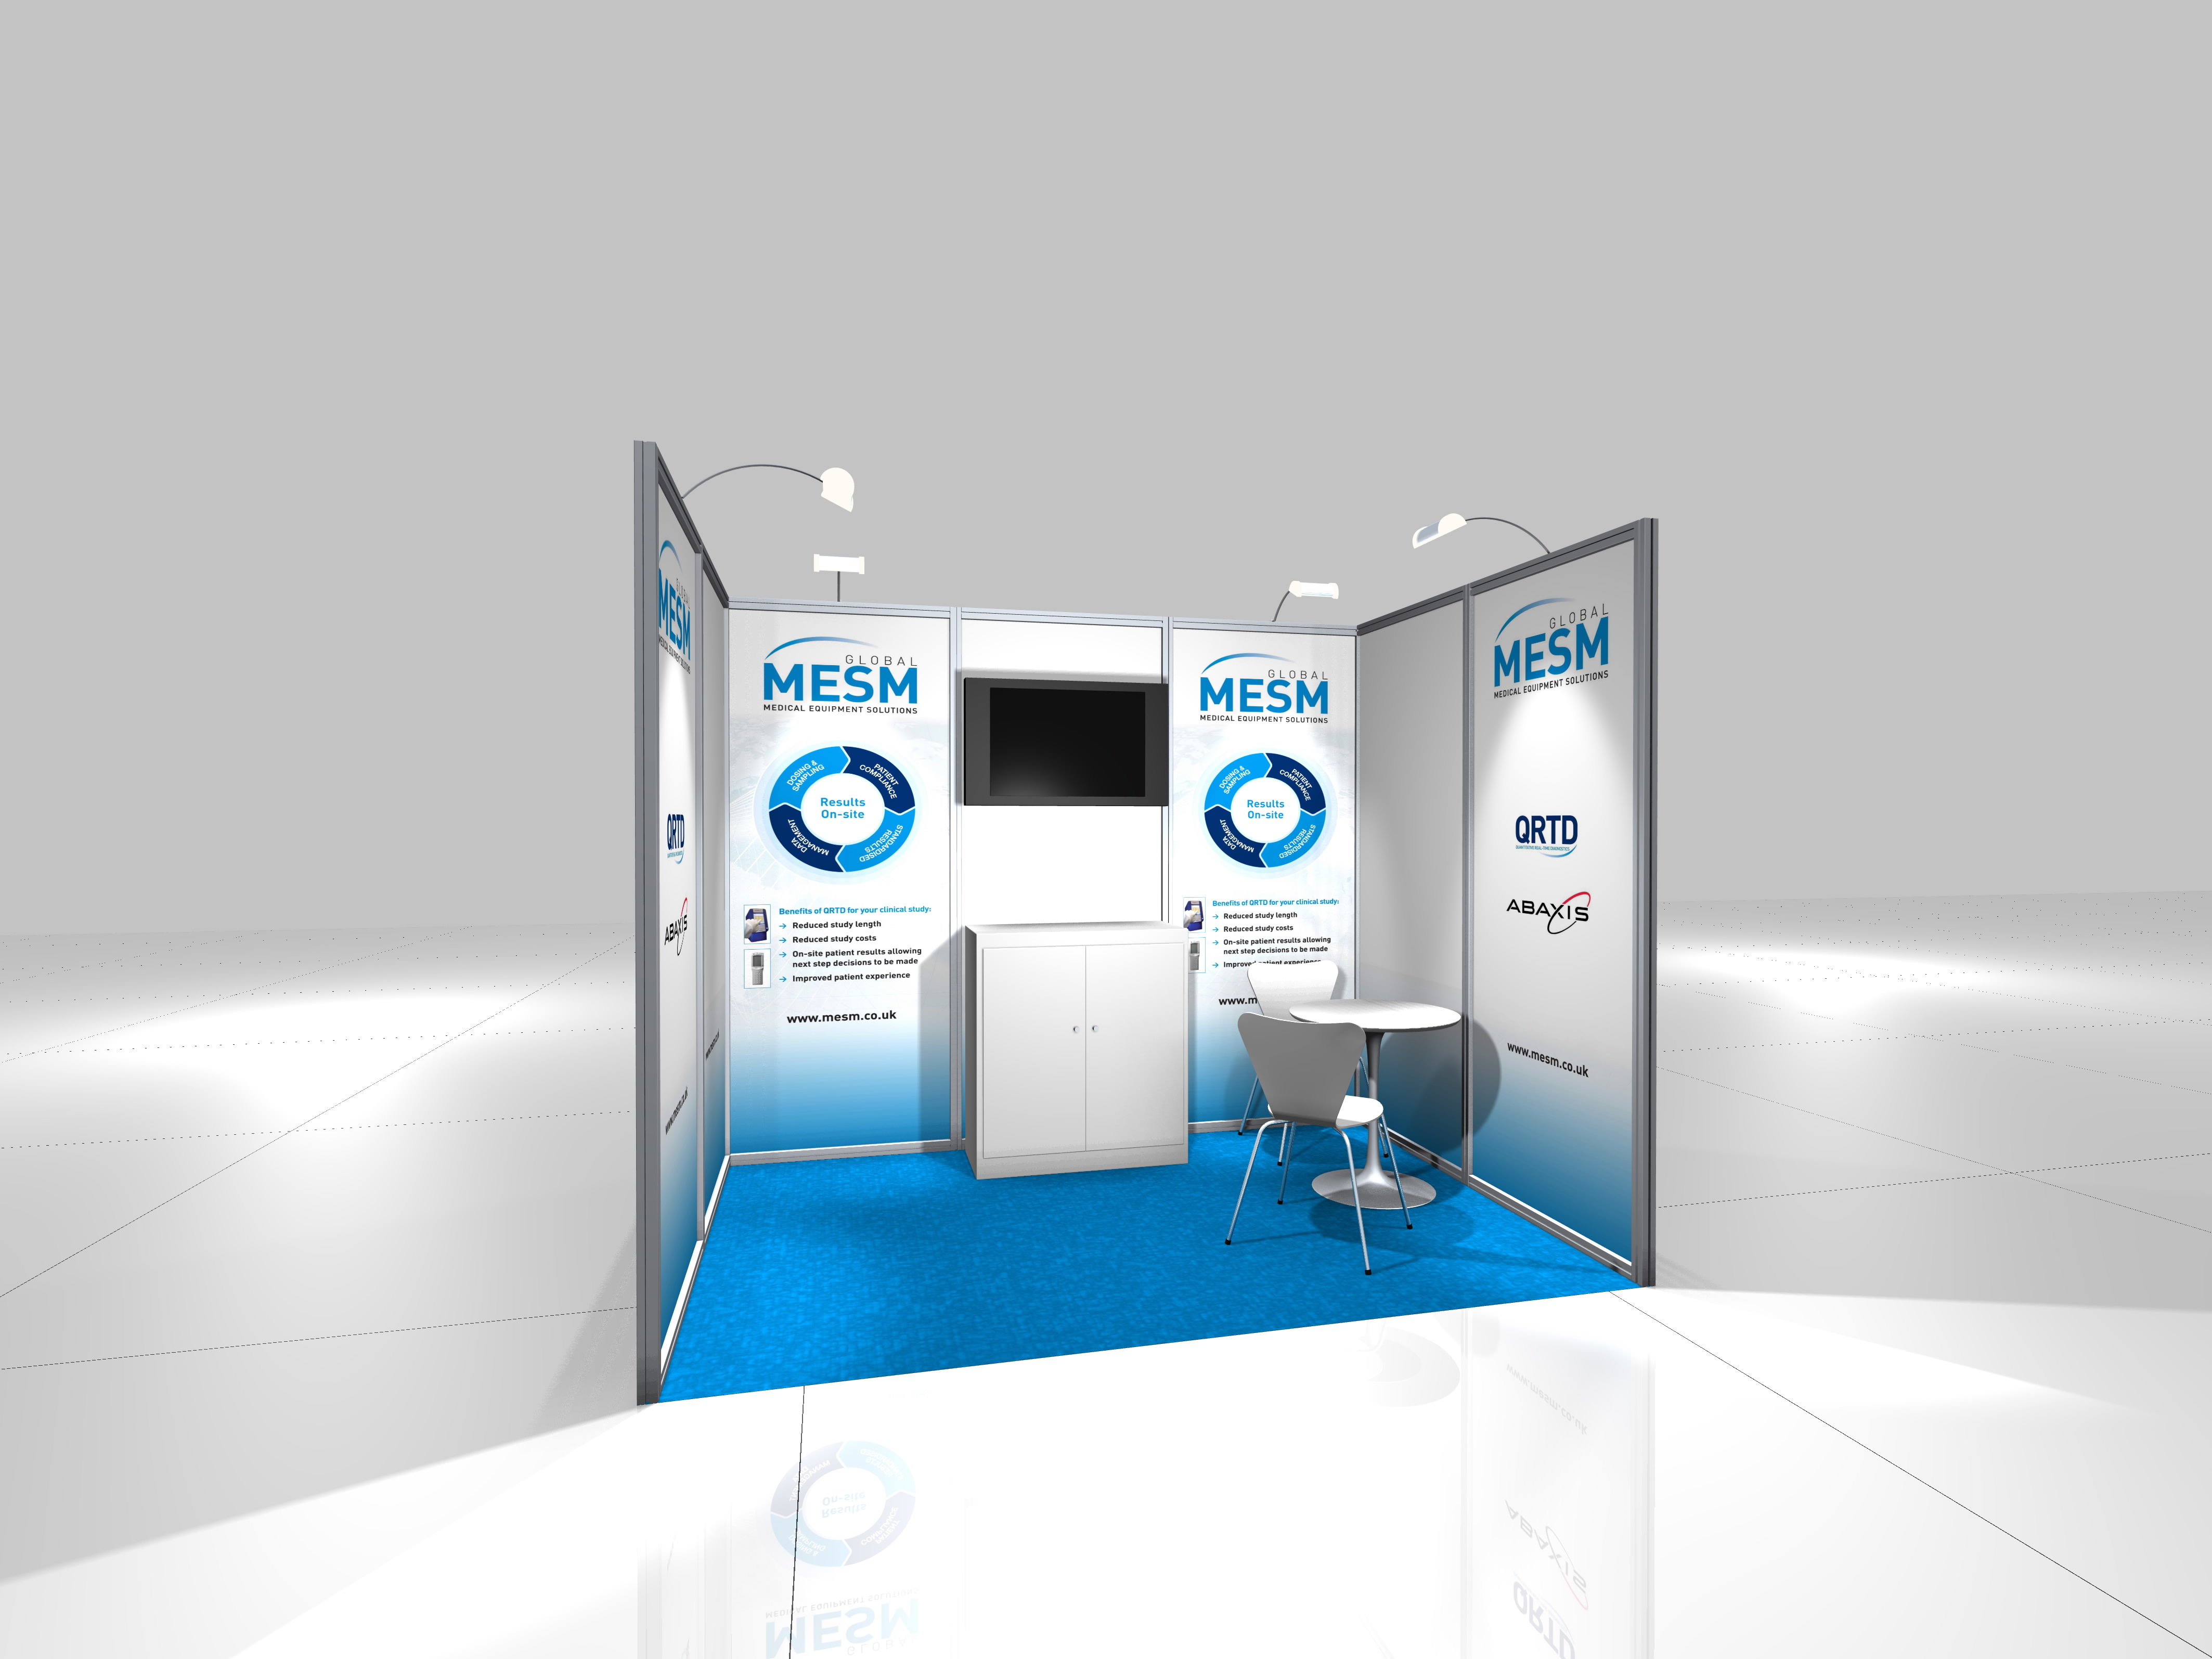 7 Trade Show Tips & Tricks For Building Exhibition Stands